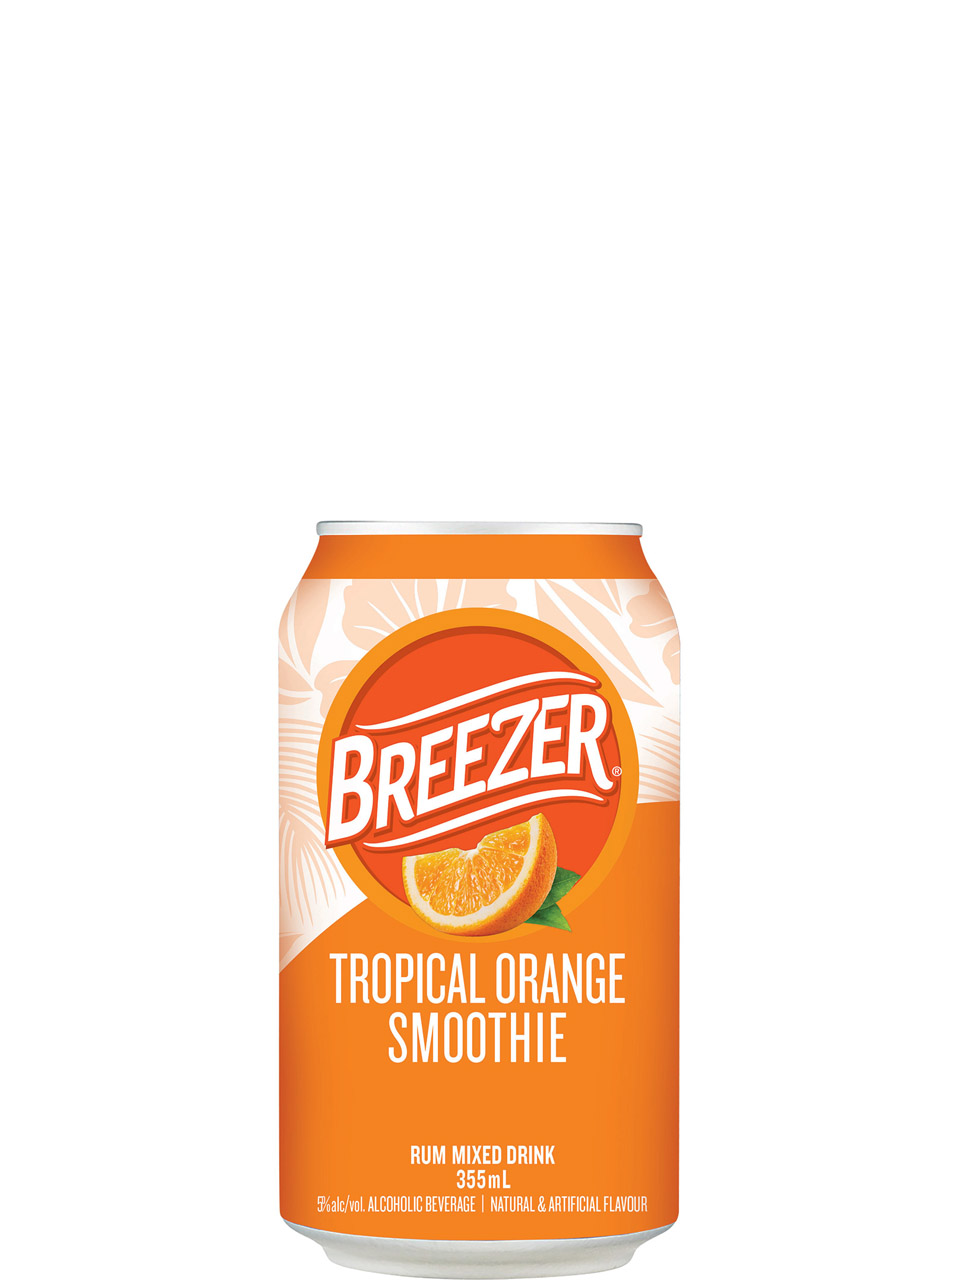 Breezer Tropical Orange Smoothie 6 Pack Cans